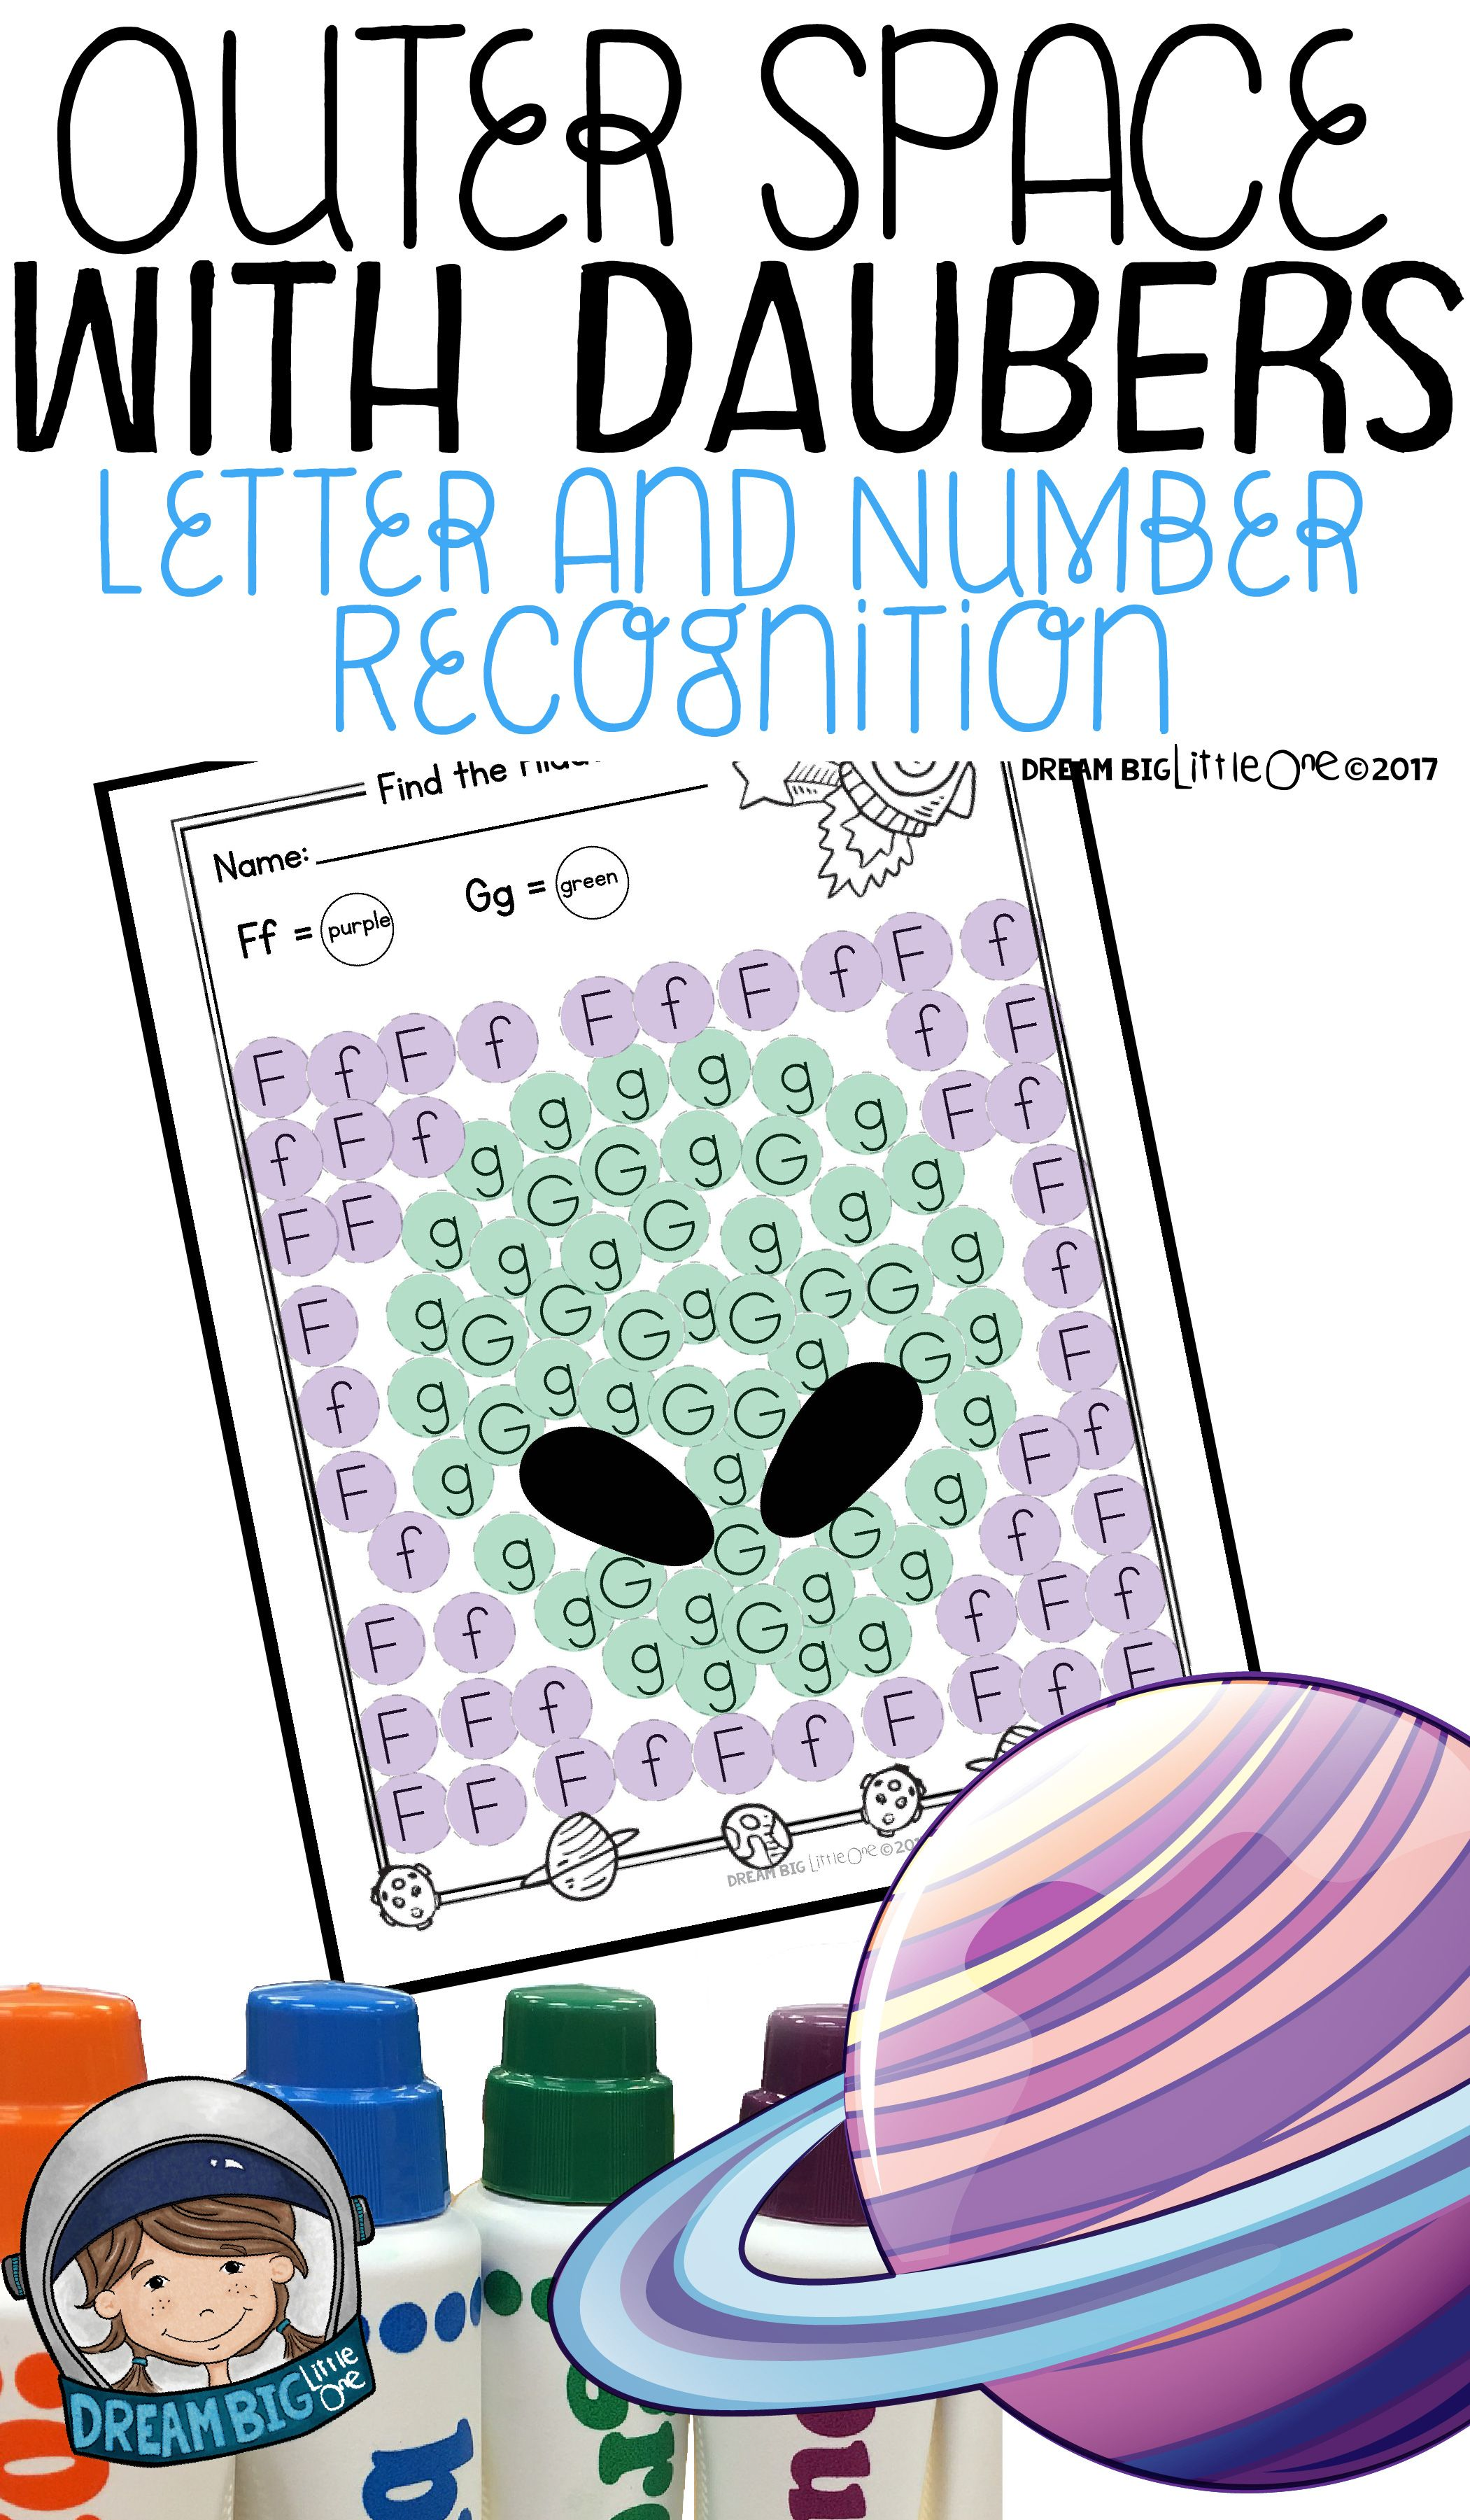 Letter And Number Recognition Hidden Pictures Activity